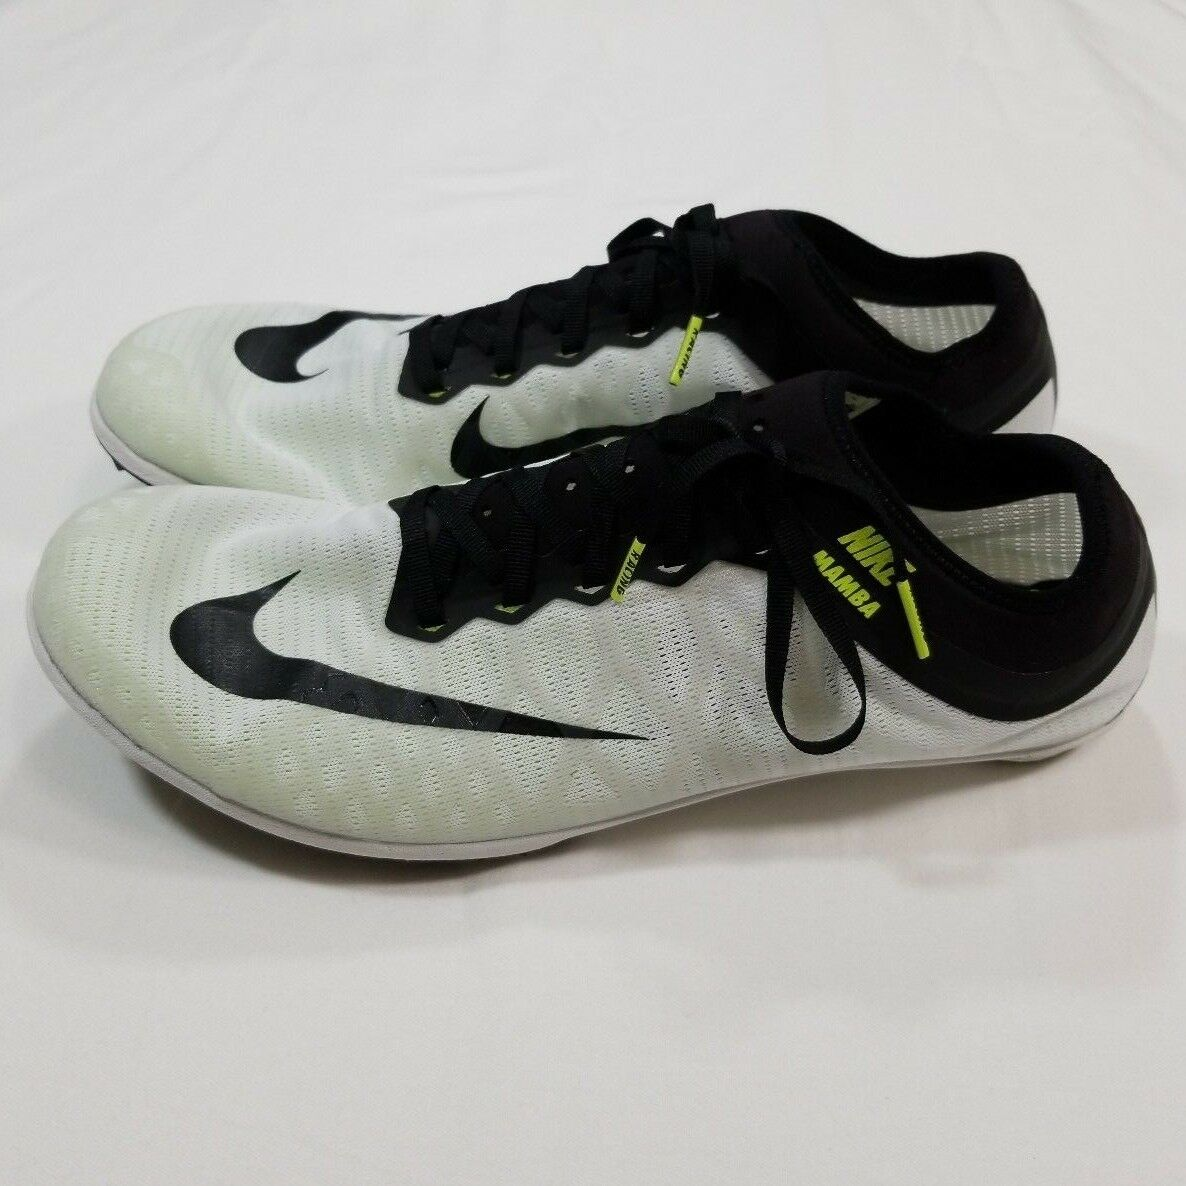 Nike Men's 14 Zoom Mamba 3 Track And Field Cleats Spikes Black White 706617-106 best-selling model of the brand